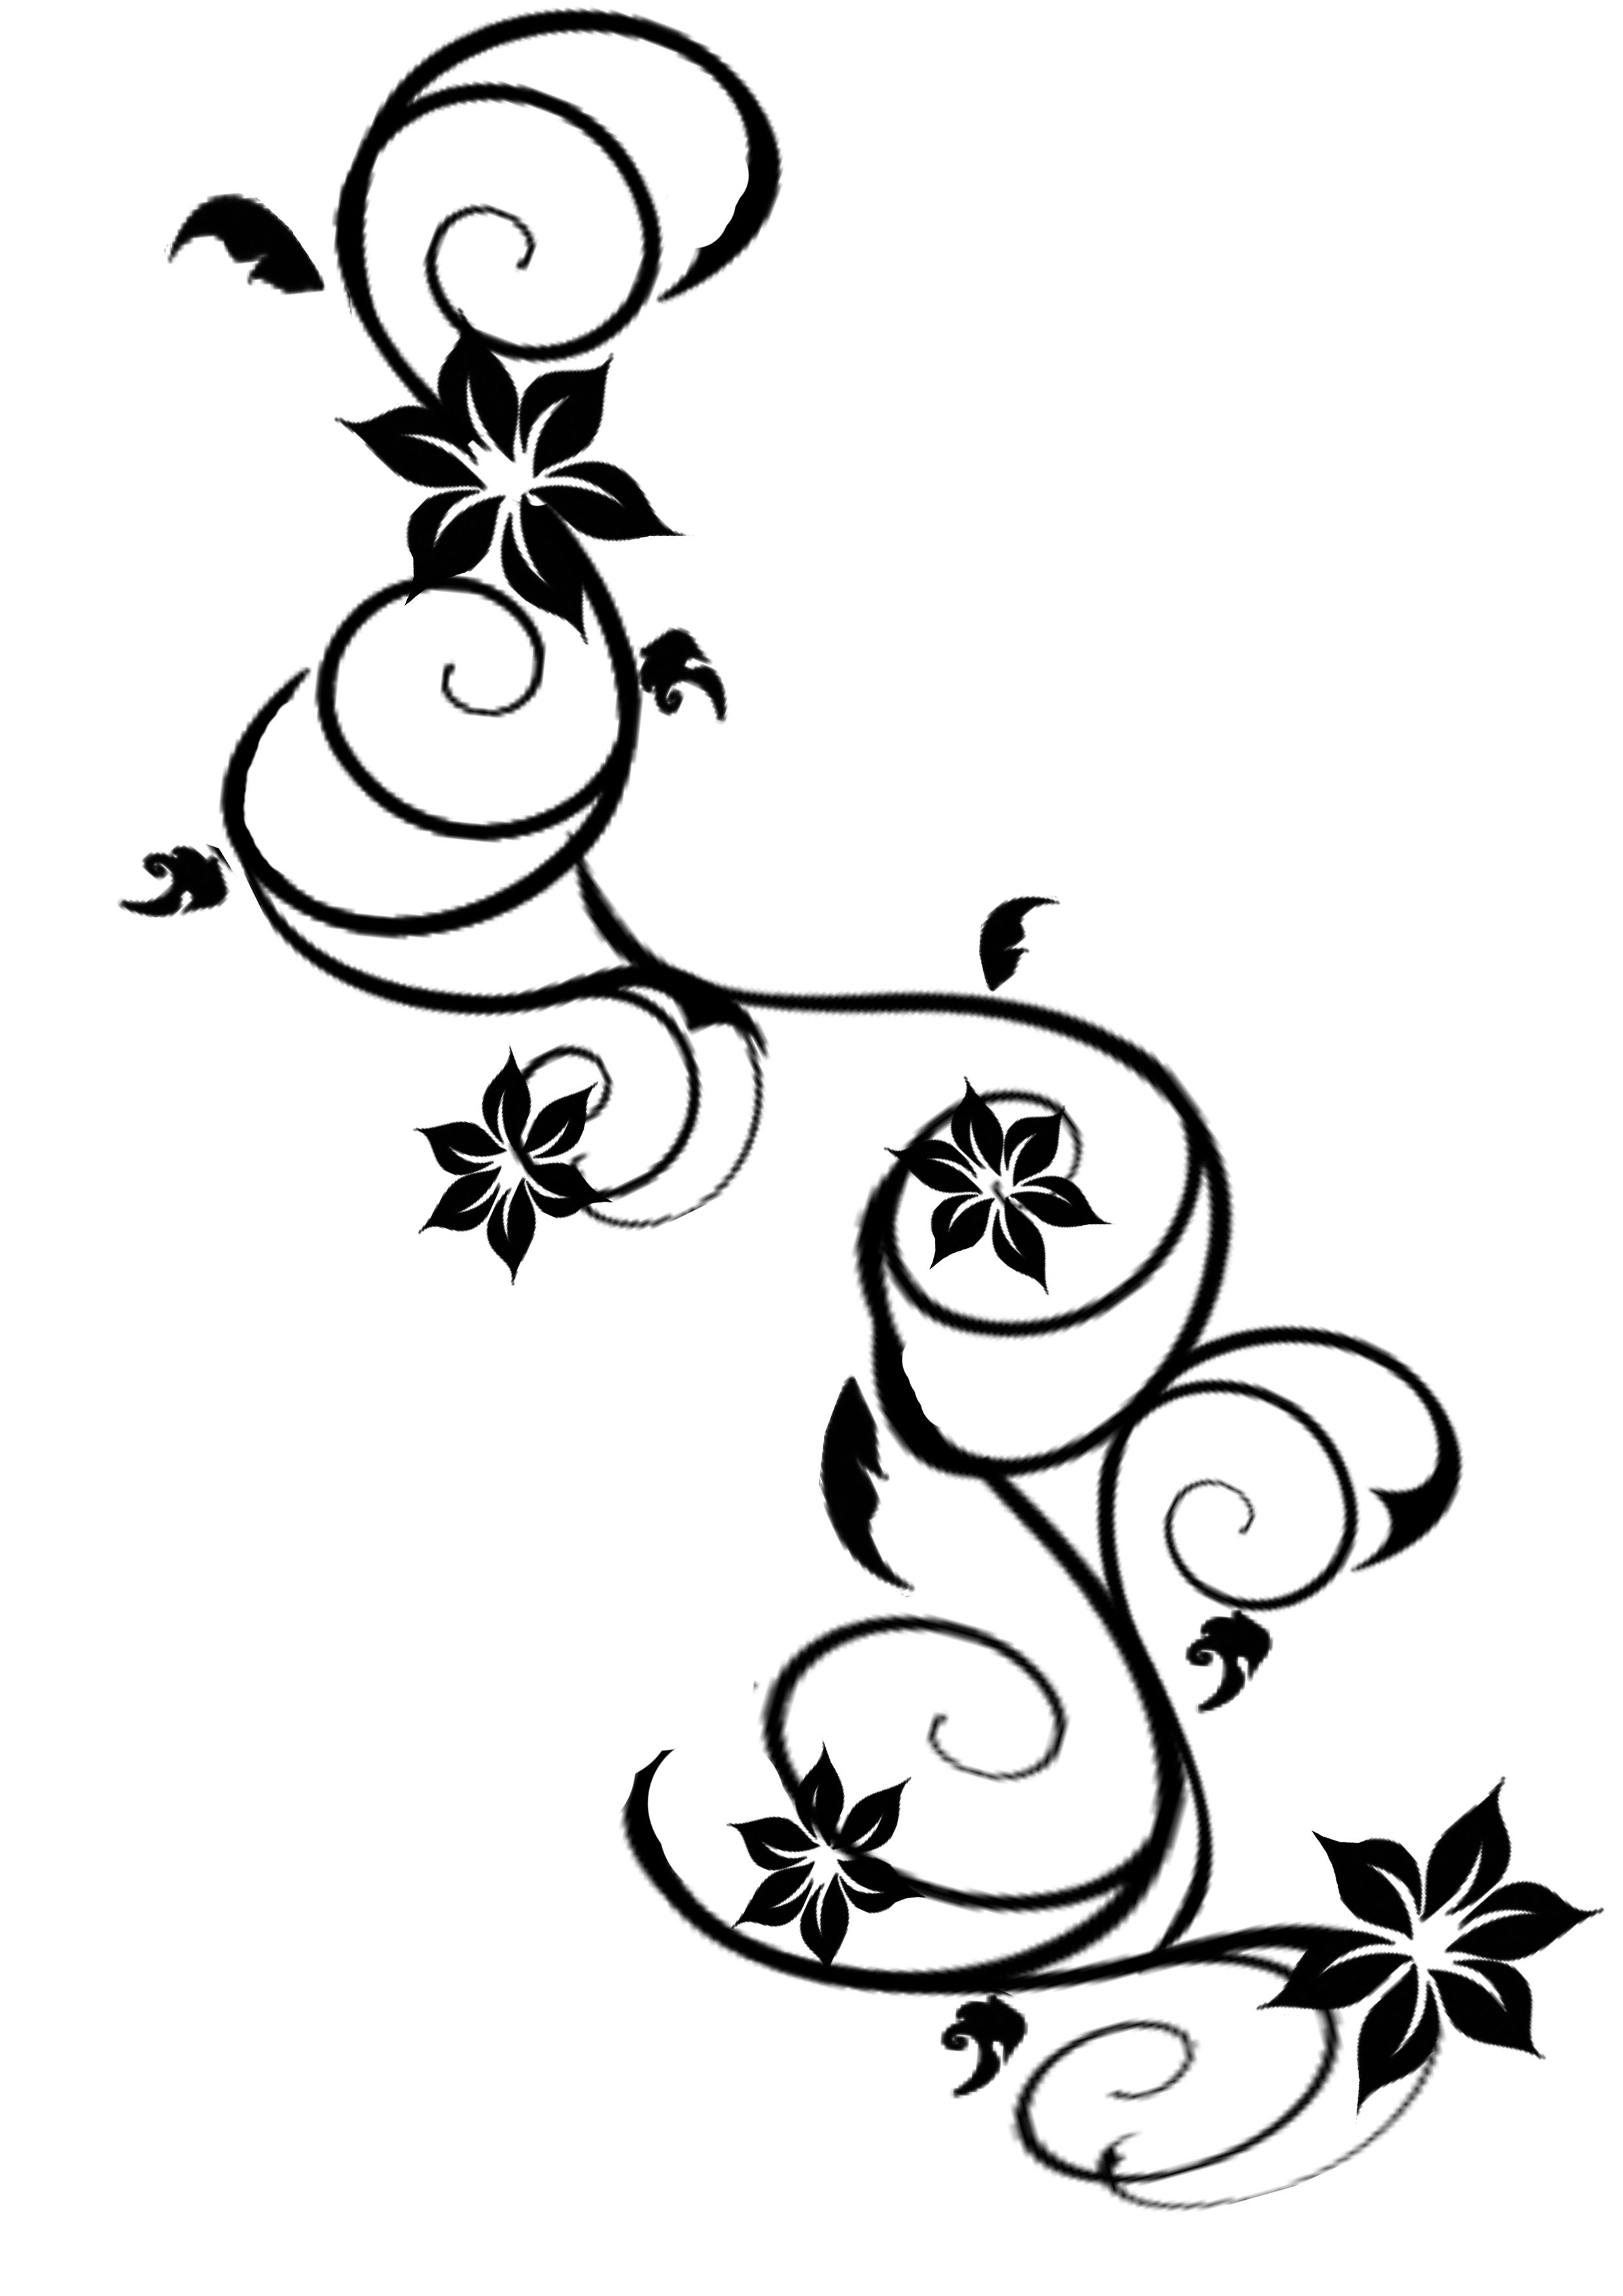 Vine Tattoos Designs Ideas And Meaning Tattoos For You T2